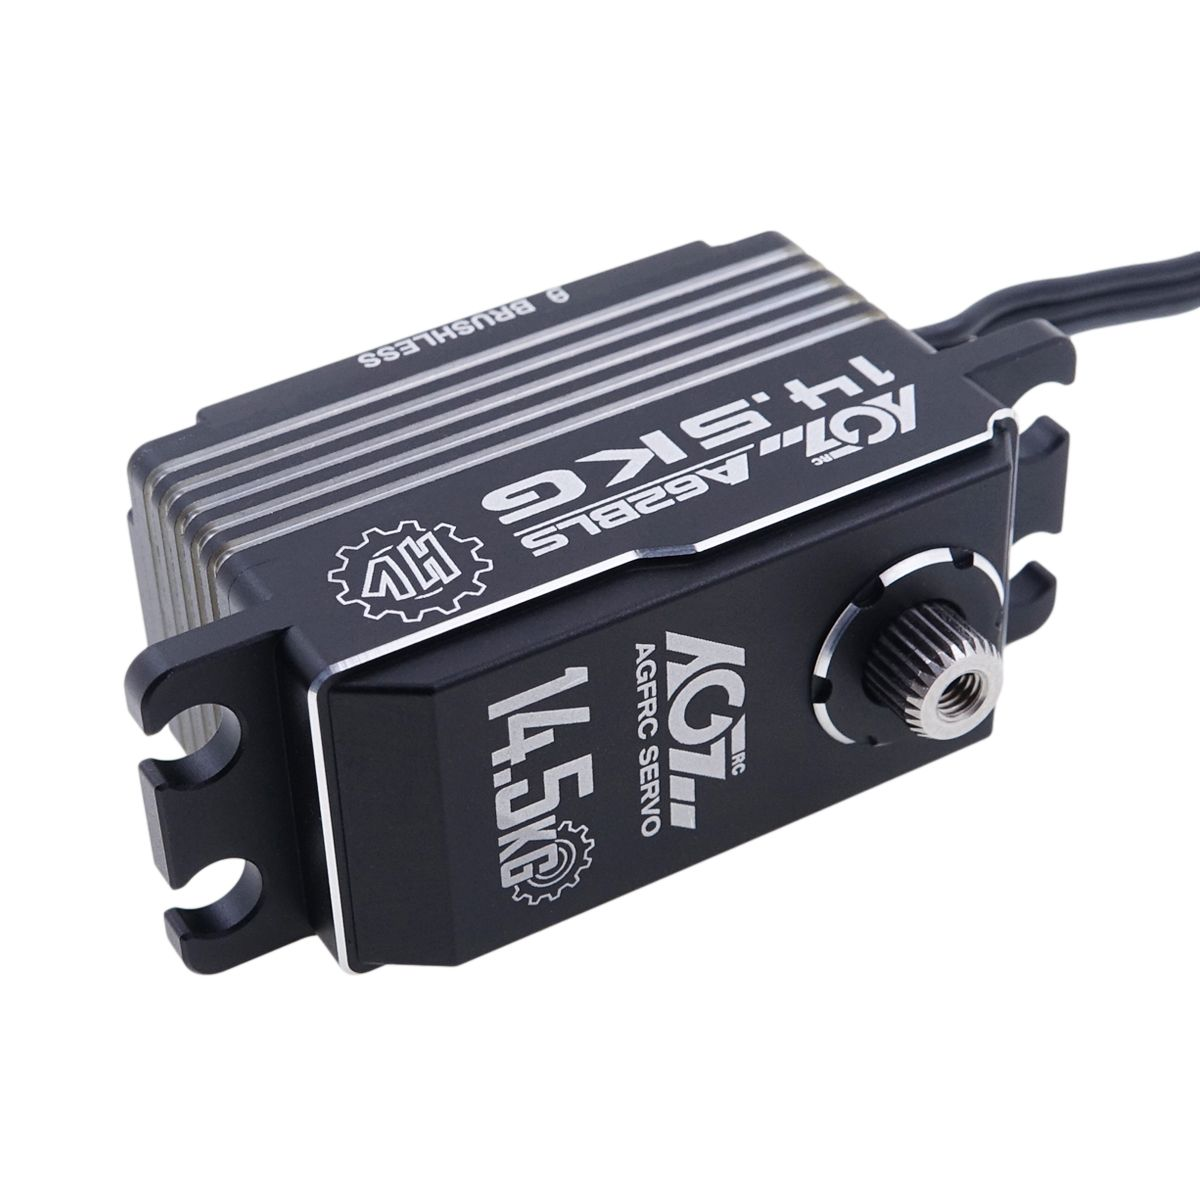 AGFRC A62BLS Aluminum Case HV Metal Gear RC Racing Programmable Brushless Servo